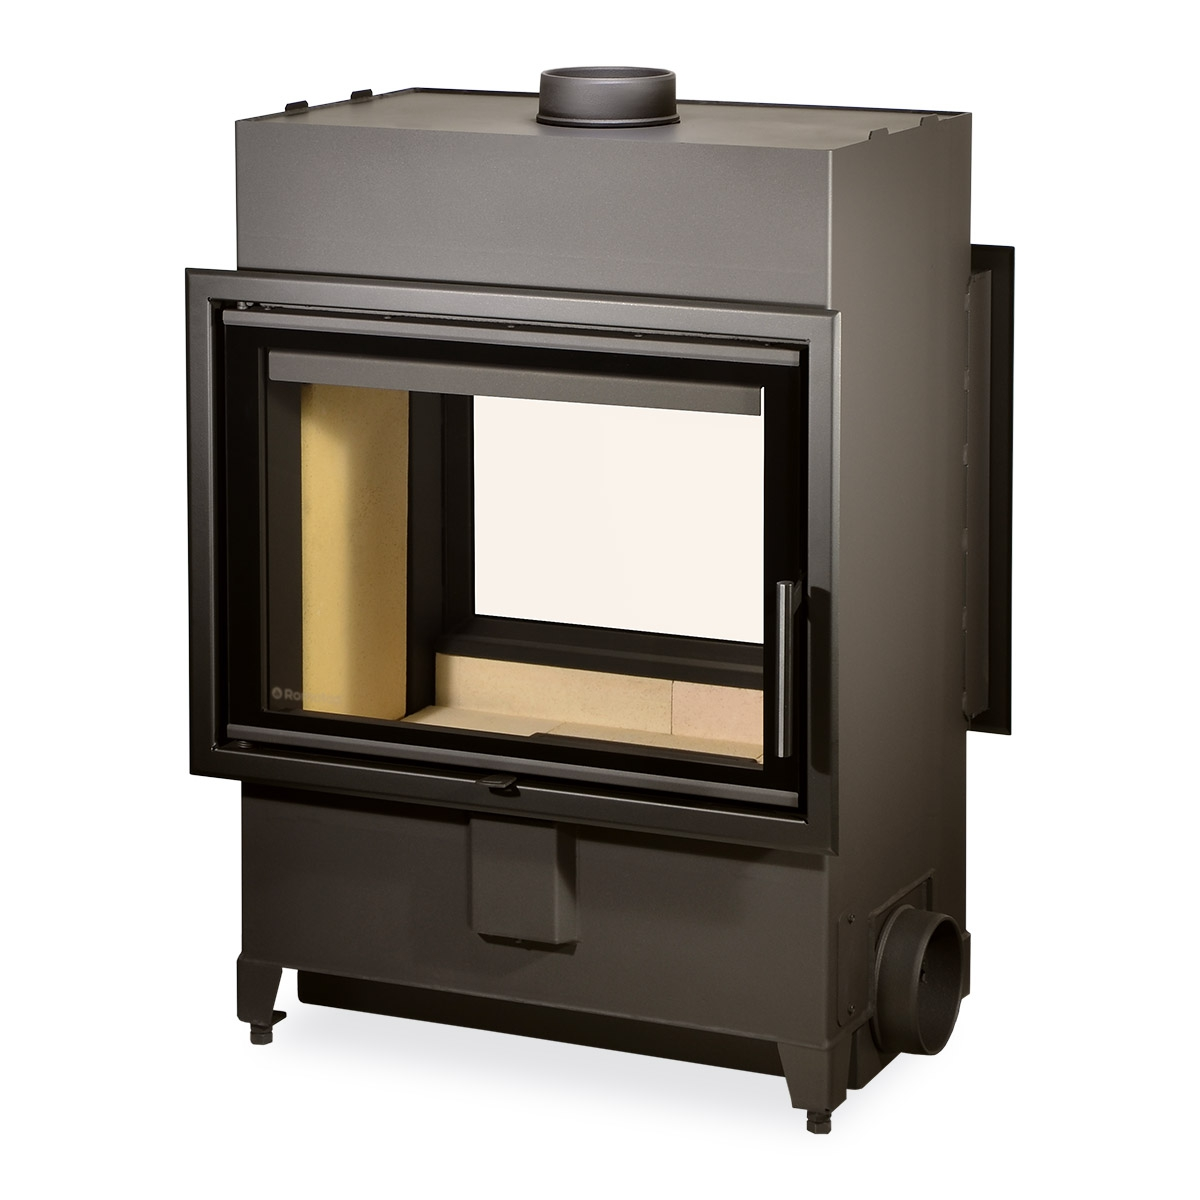 Fireplace Doesnt Heat: Romotop HEAT T 2g 70.50.01 - Tunnel Fireplace Insert